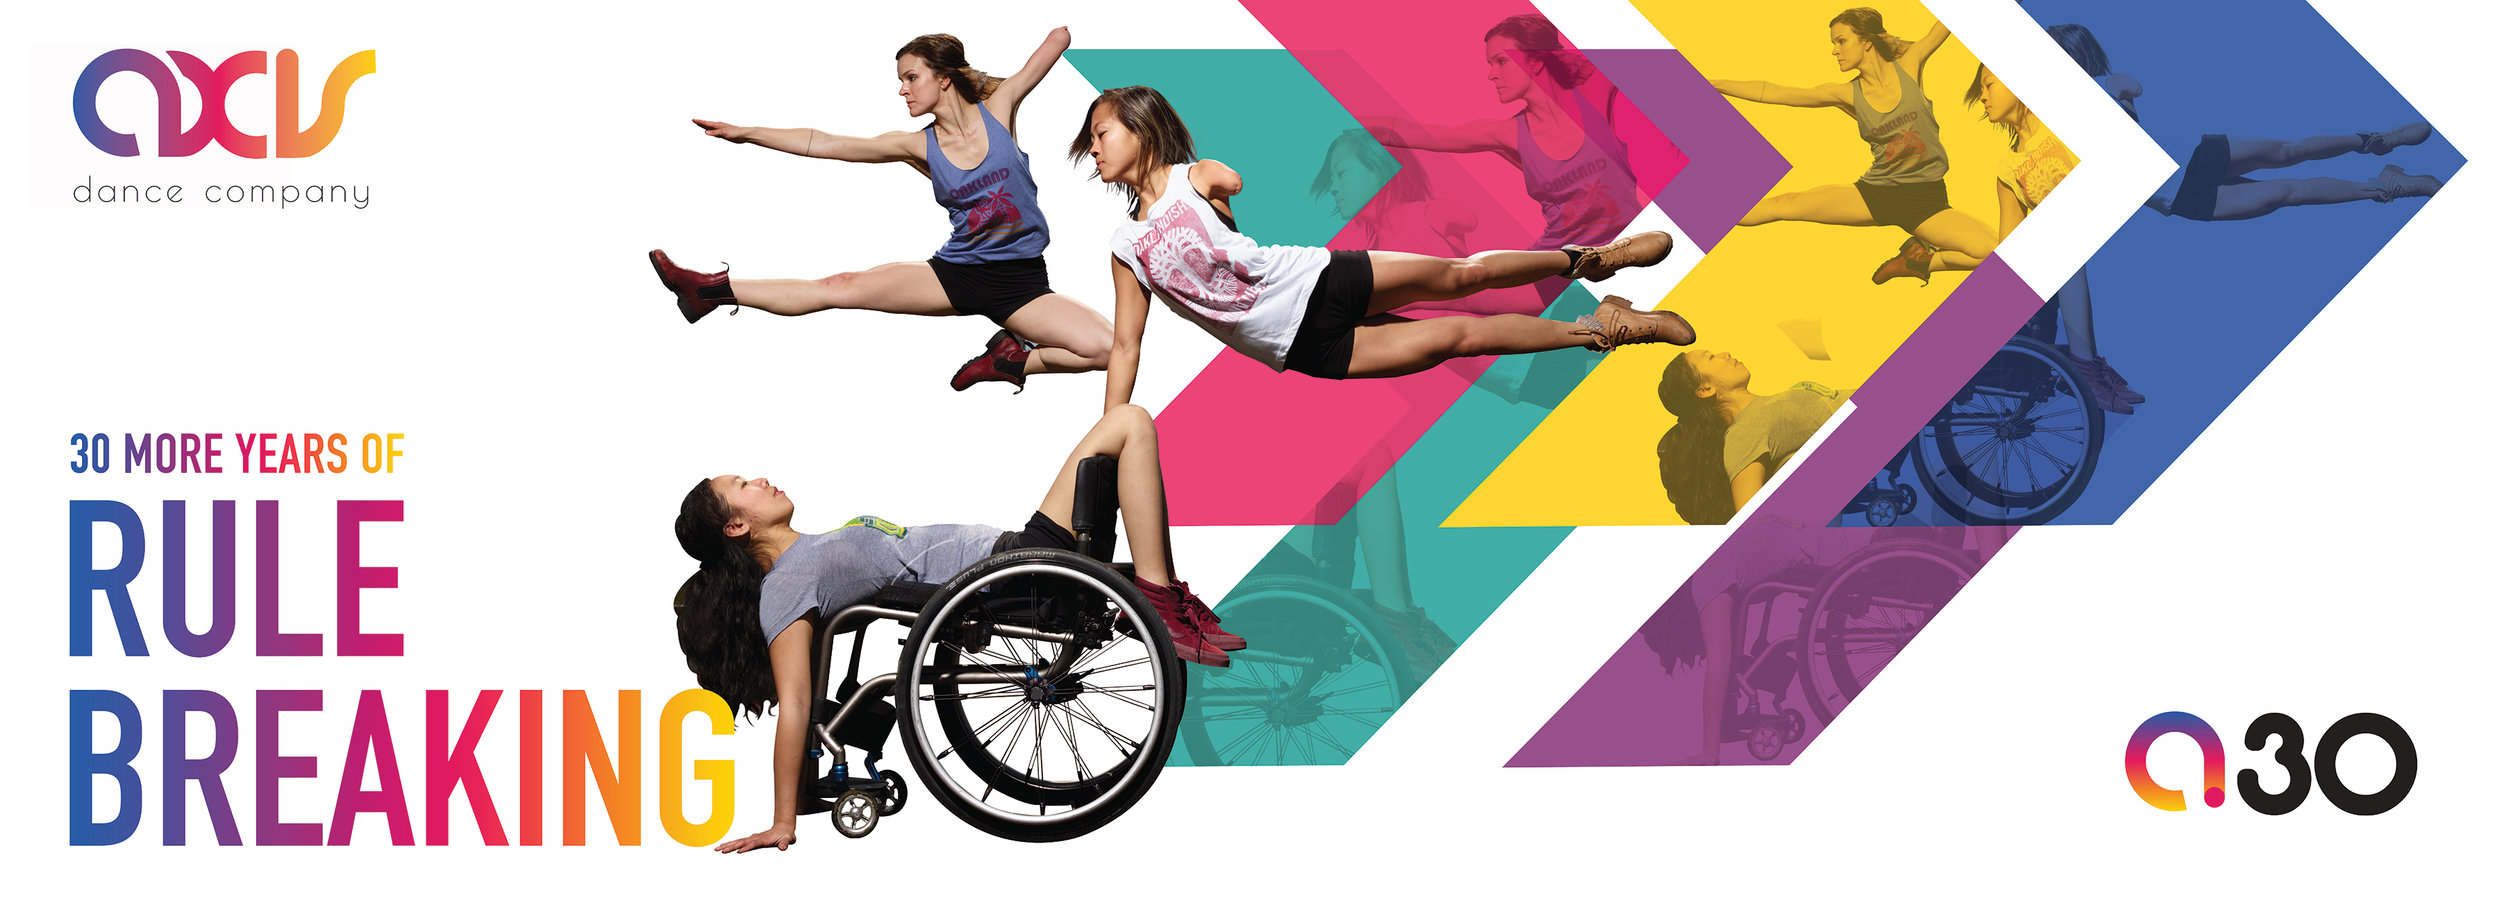 "Colorful banner featuring three AXIS dancers. The left side of the banner features AXIS Dance Company's logo and the words ""30 more years of rule breaking"" in large font with a colorful gradient. In the center, dancer Carina Ho does a backbend with her legs over the back of her wheelchair, her palms flat on the ground, and her back resting on the seat. Dancers Julie Crothers and Lani Dickinson execute jumps and leaps with their arms and legs extended. In the background behind the dancers are five large, colorful, overlapping arrows that point toward the right, where the AXIS 30th anniversary logo sits in the lower corner. Photo by David DeSilva."